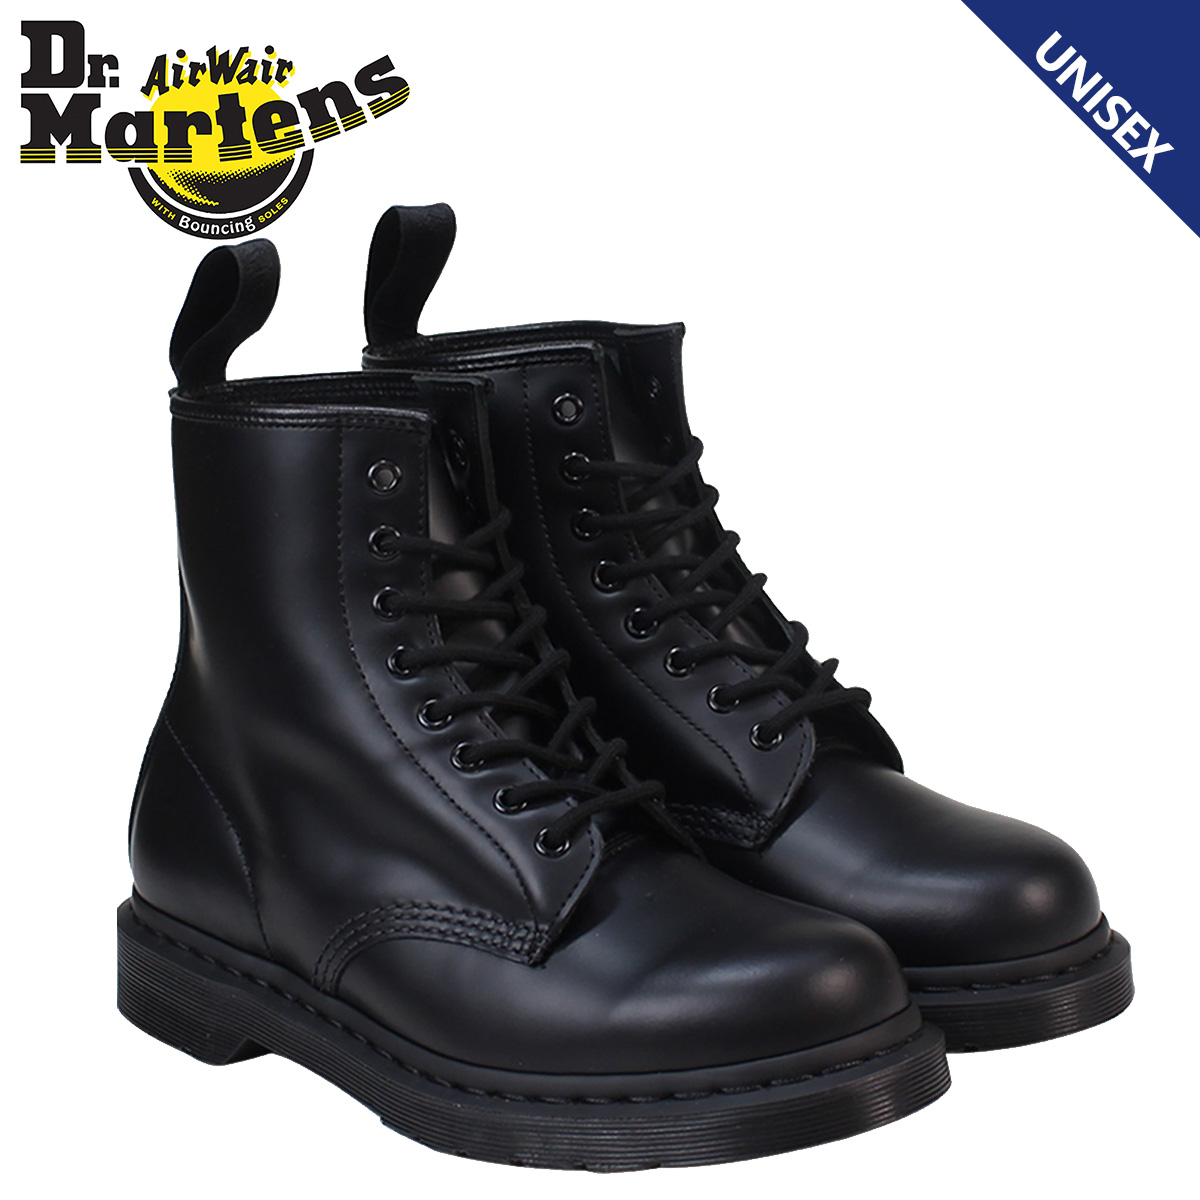 Dr.Martens and☆ 1460 MONO/PART OF THE CORE COLLECTION ☆